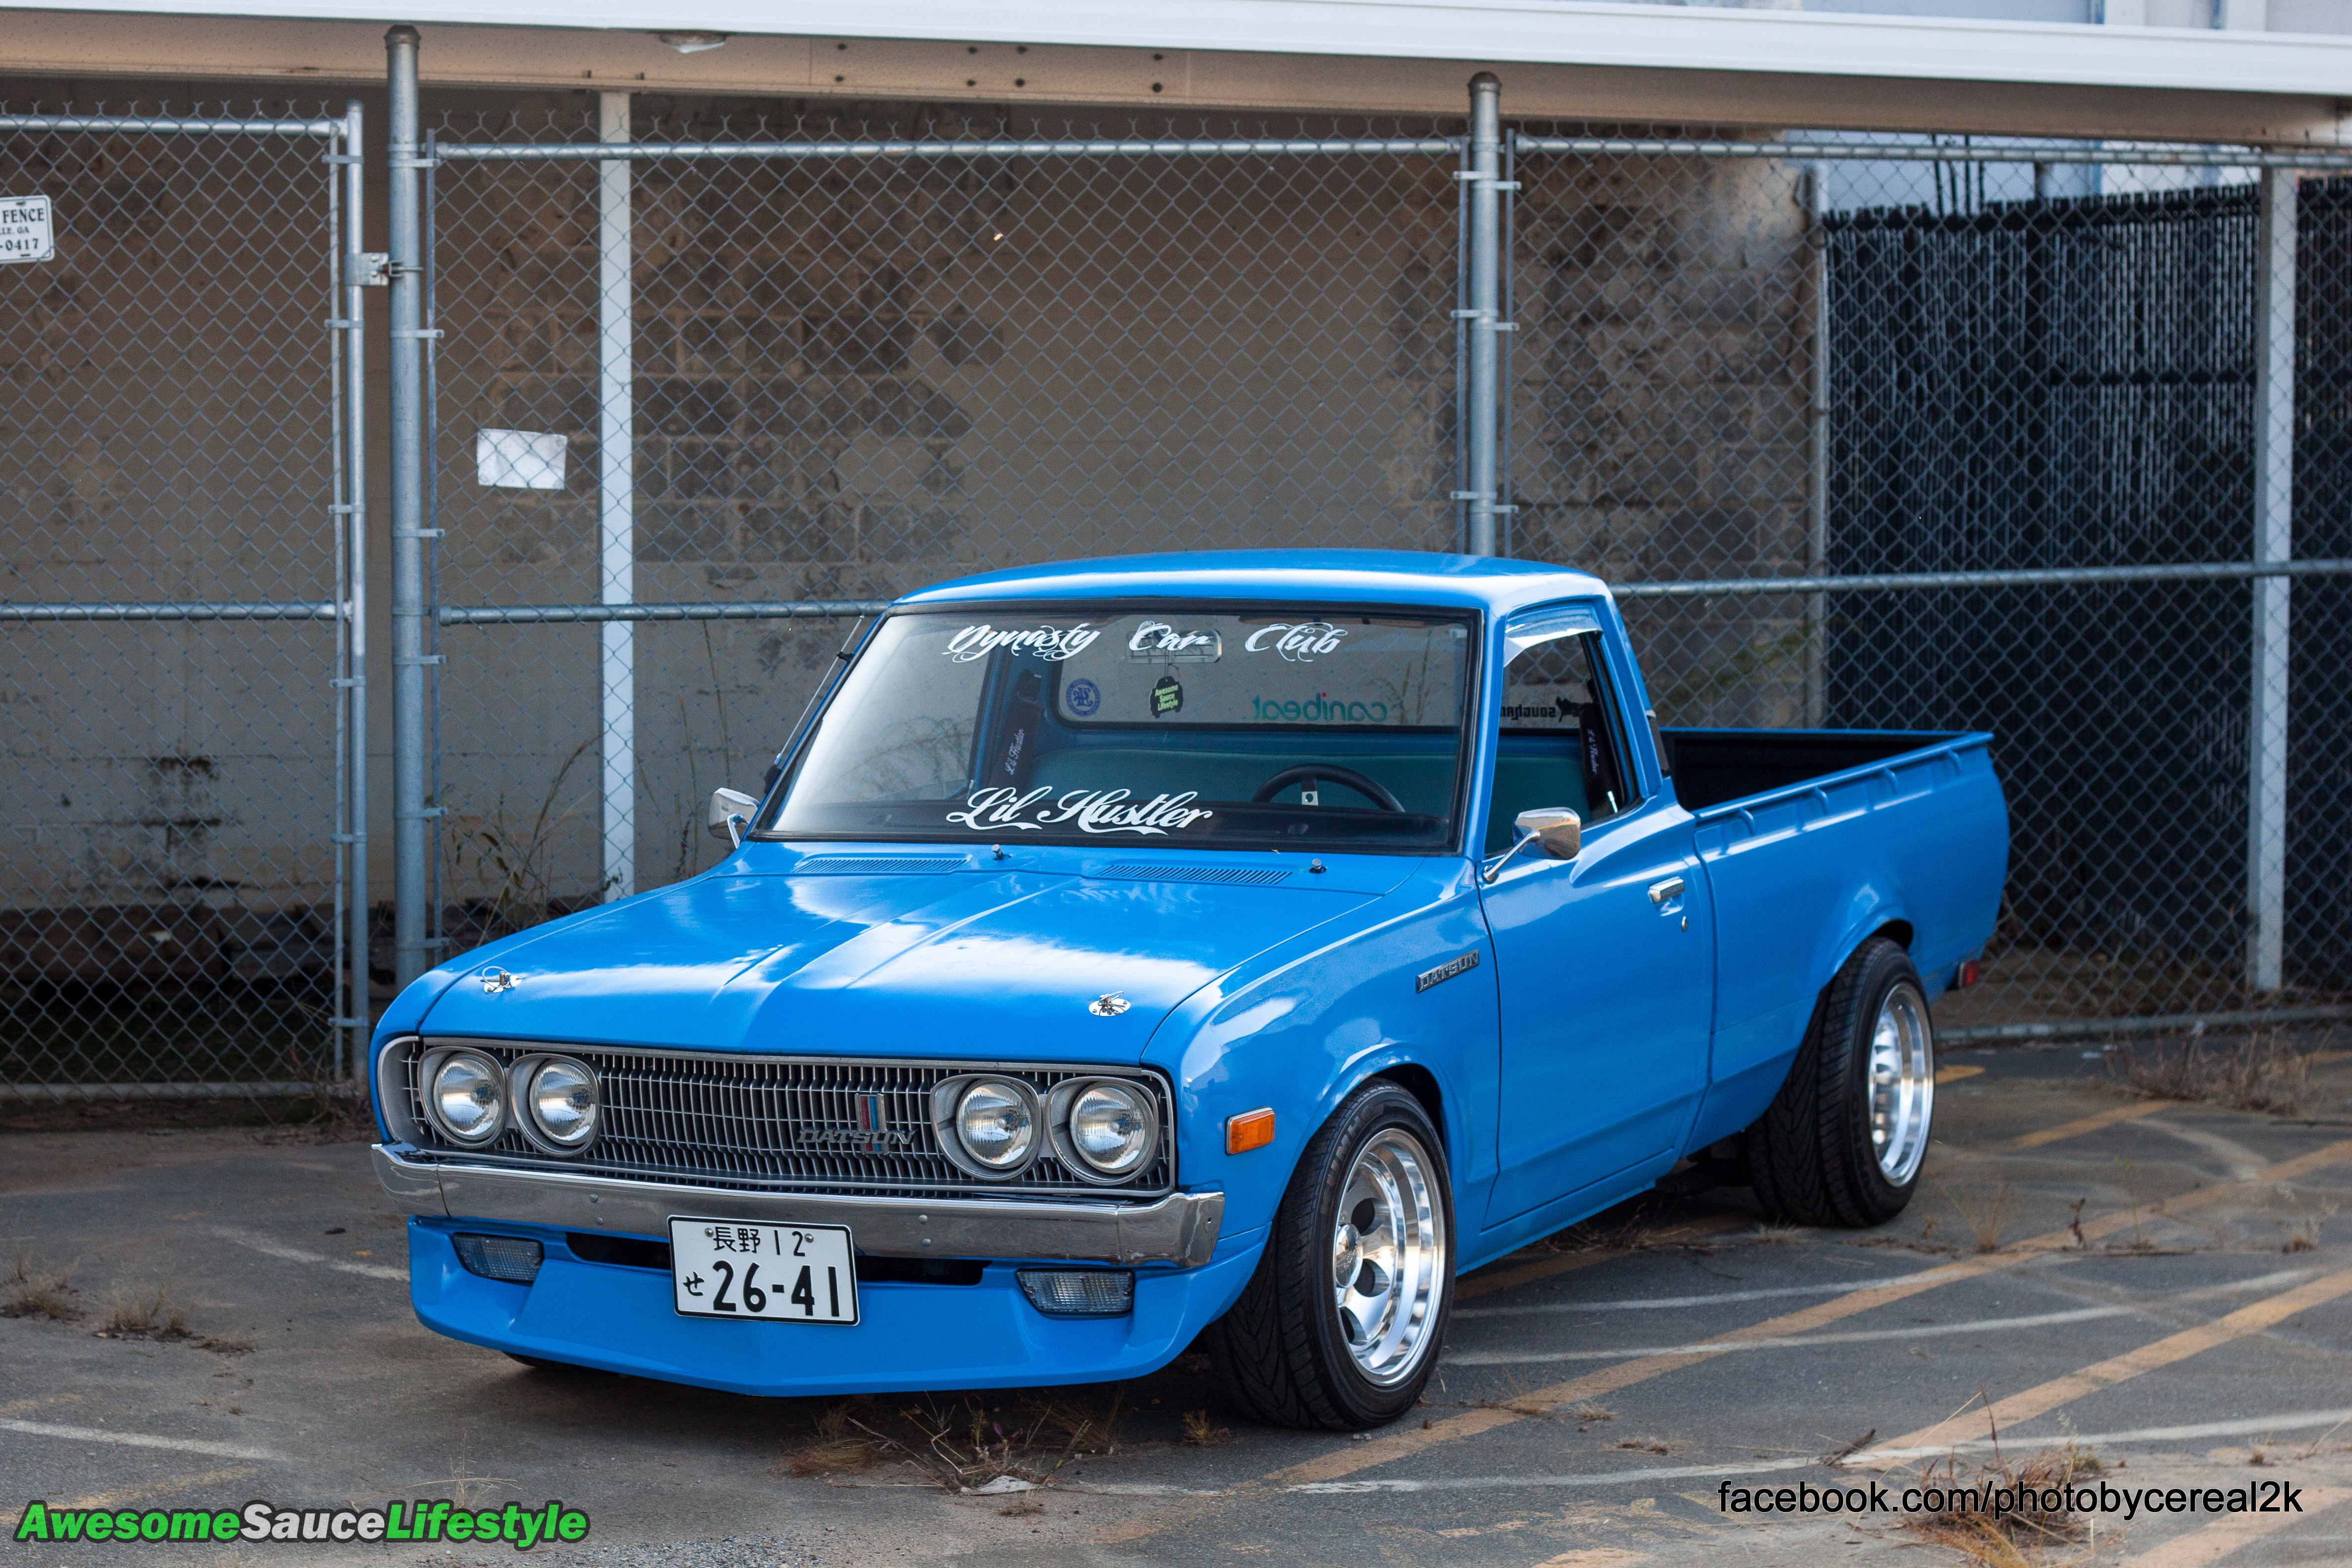 feature 1974 nissan datsun pickup truck awesomesaucelifestyle. Black Bedroom Furniture Sets. Home Design Ideas